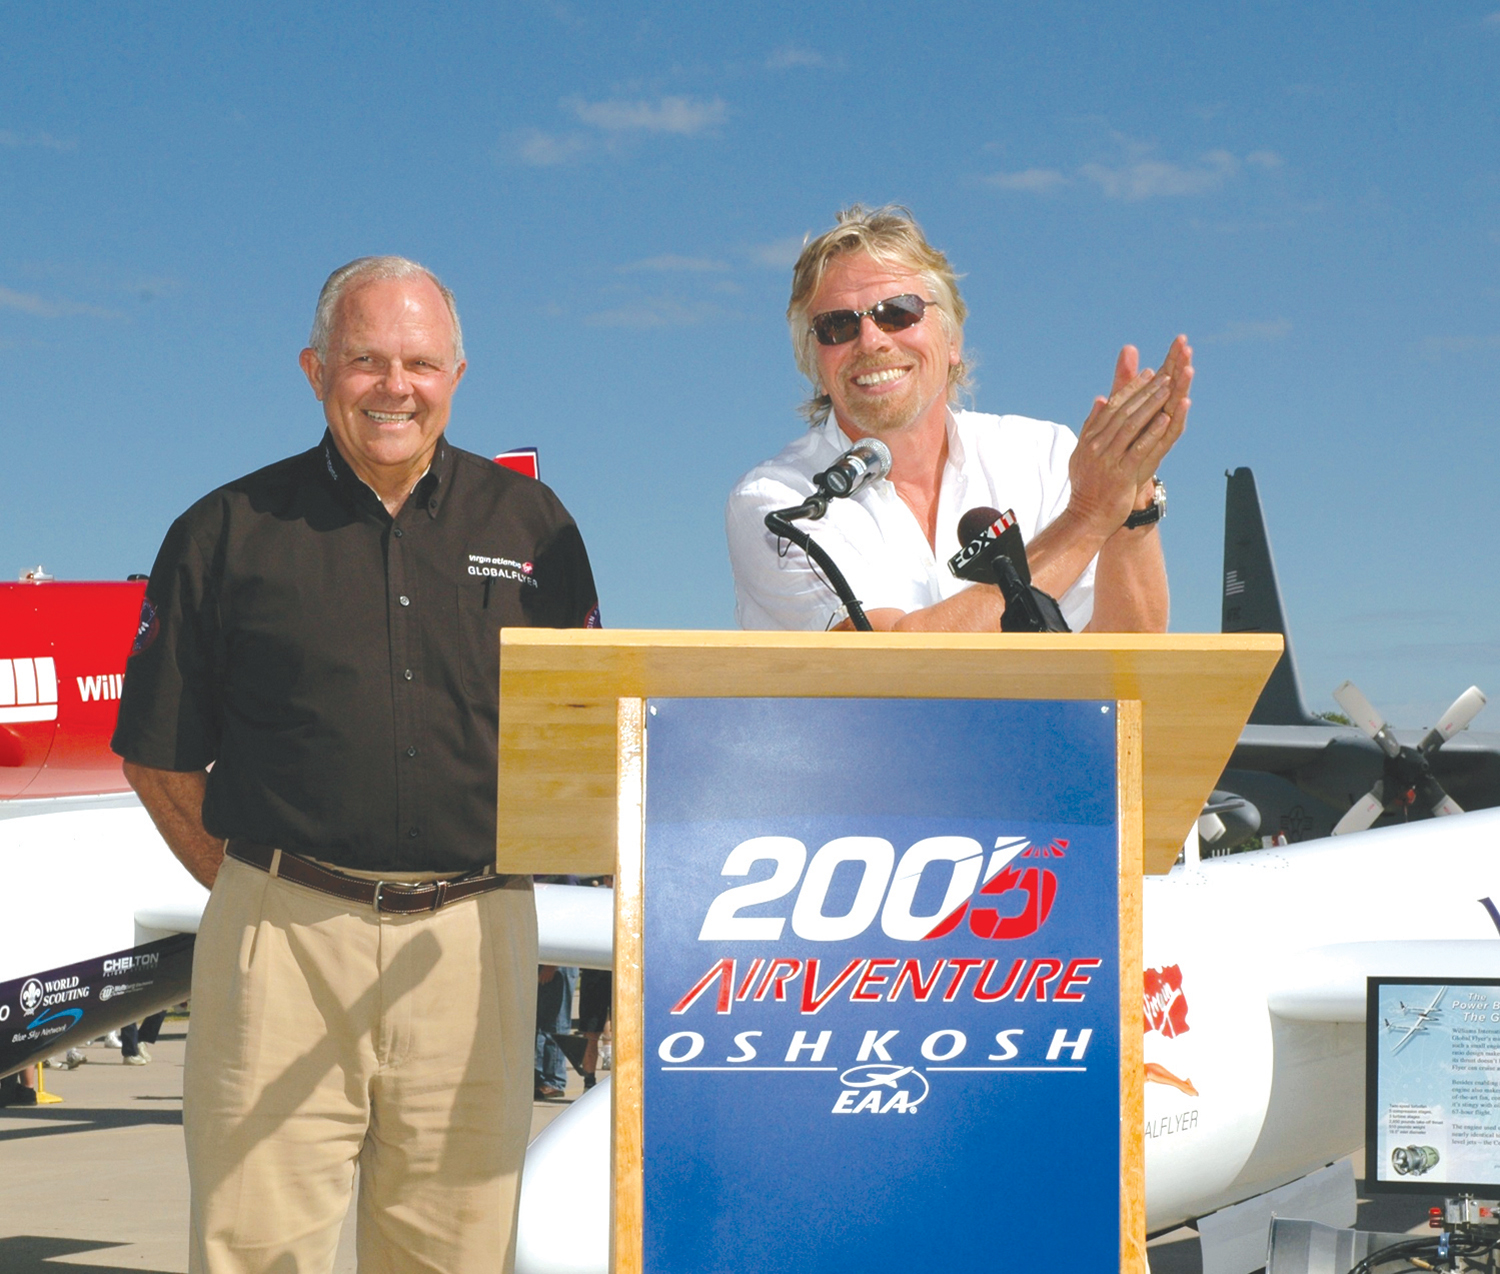 AirVenture: Getting Better Each Year